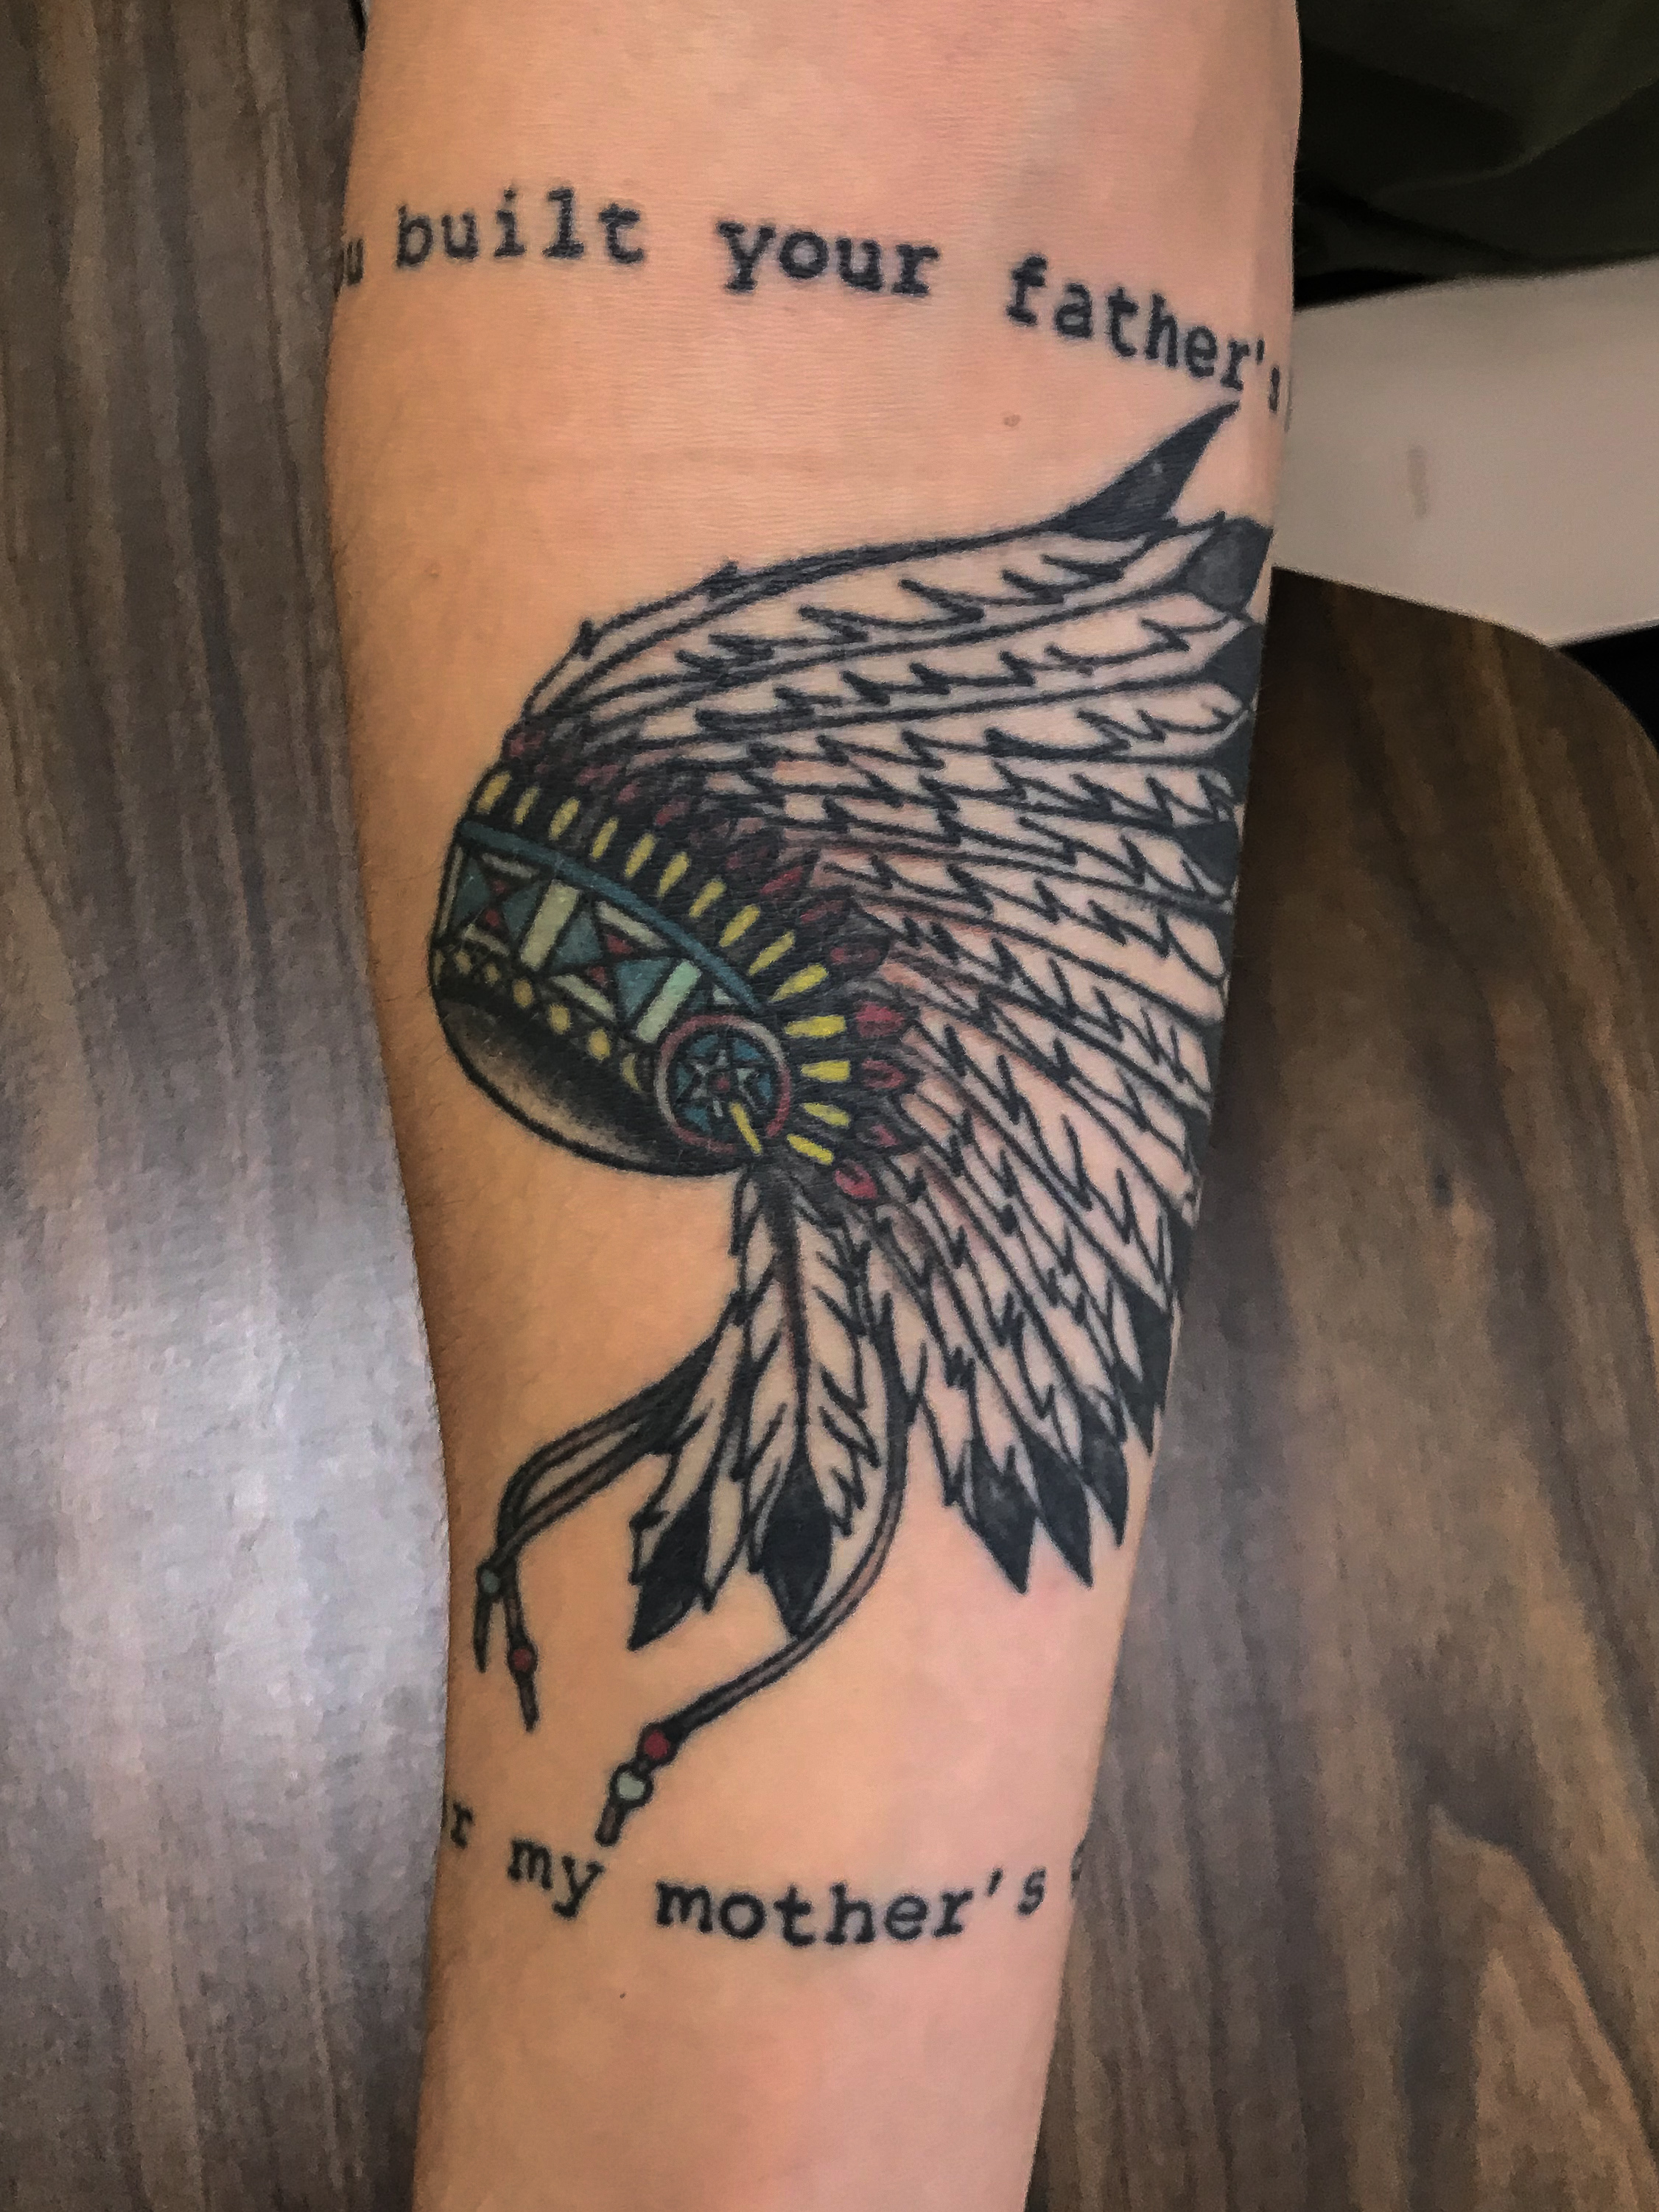 "This is Ethan Clark's tattoo on his right forearm. The writing is lyrics that say, ""You built your father's tomb on my mother's grave."" Clark got this tattoo to represent Manifest Destiny during Westward Expansion. Being a member of the army, this will remind him to step back and think about the effects of his action on the lands that are not his home."